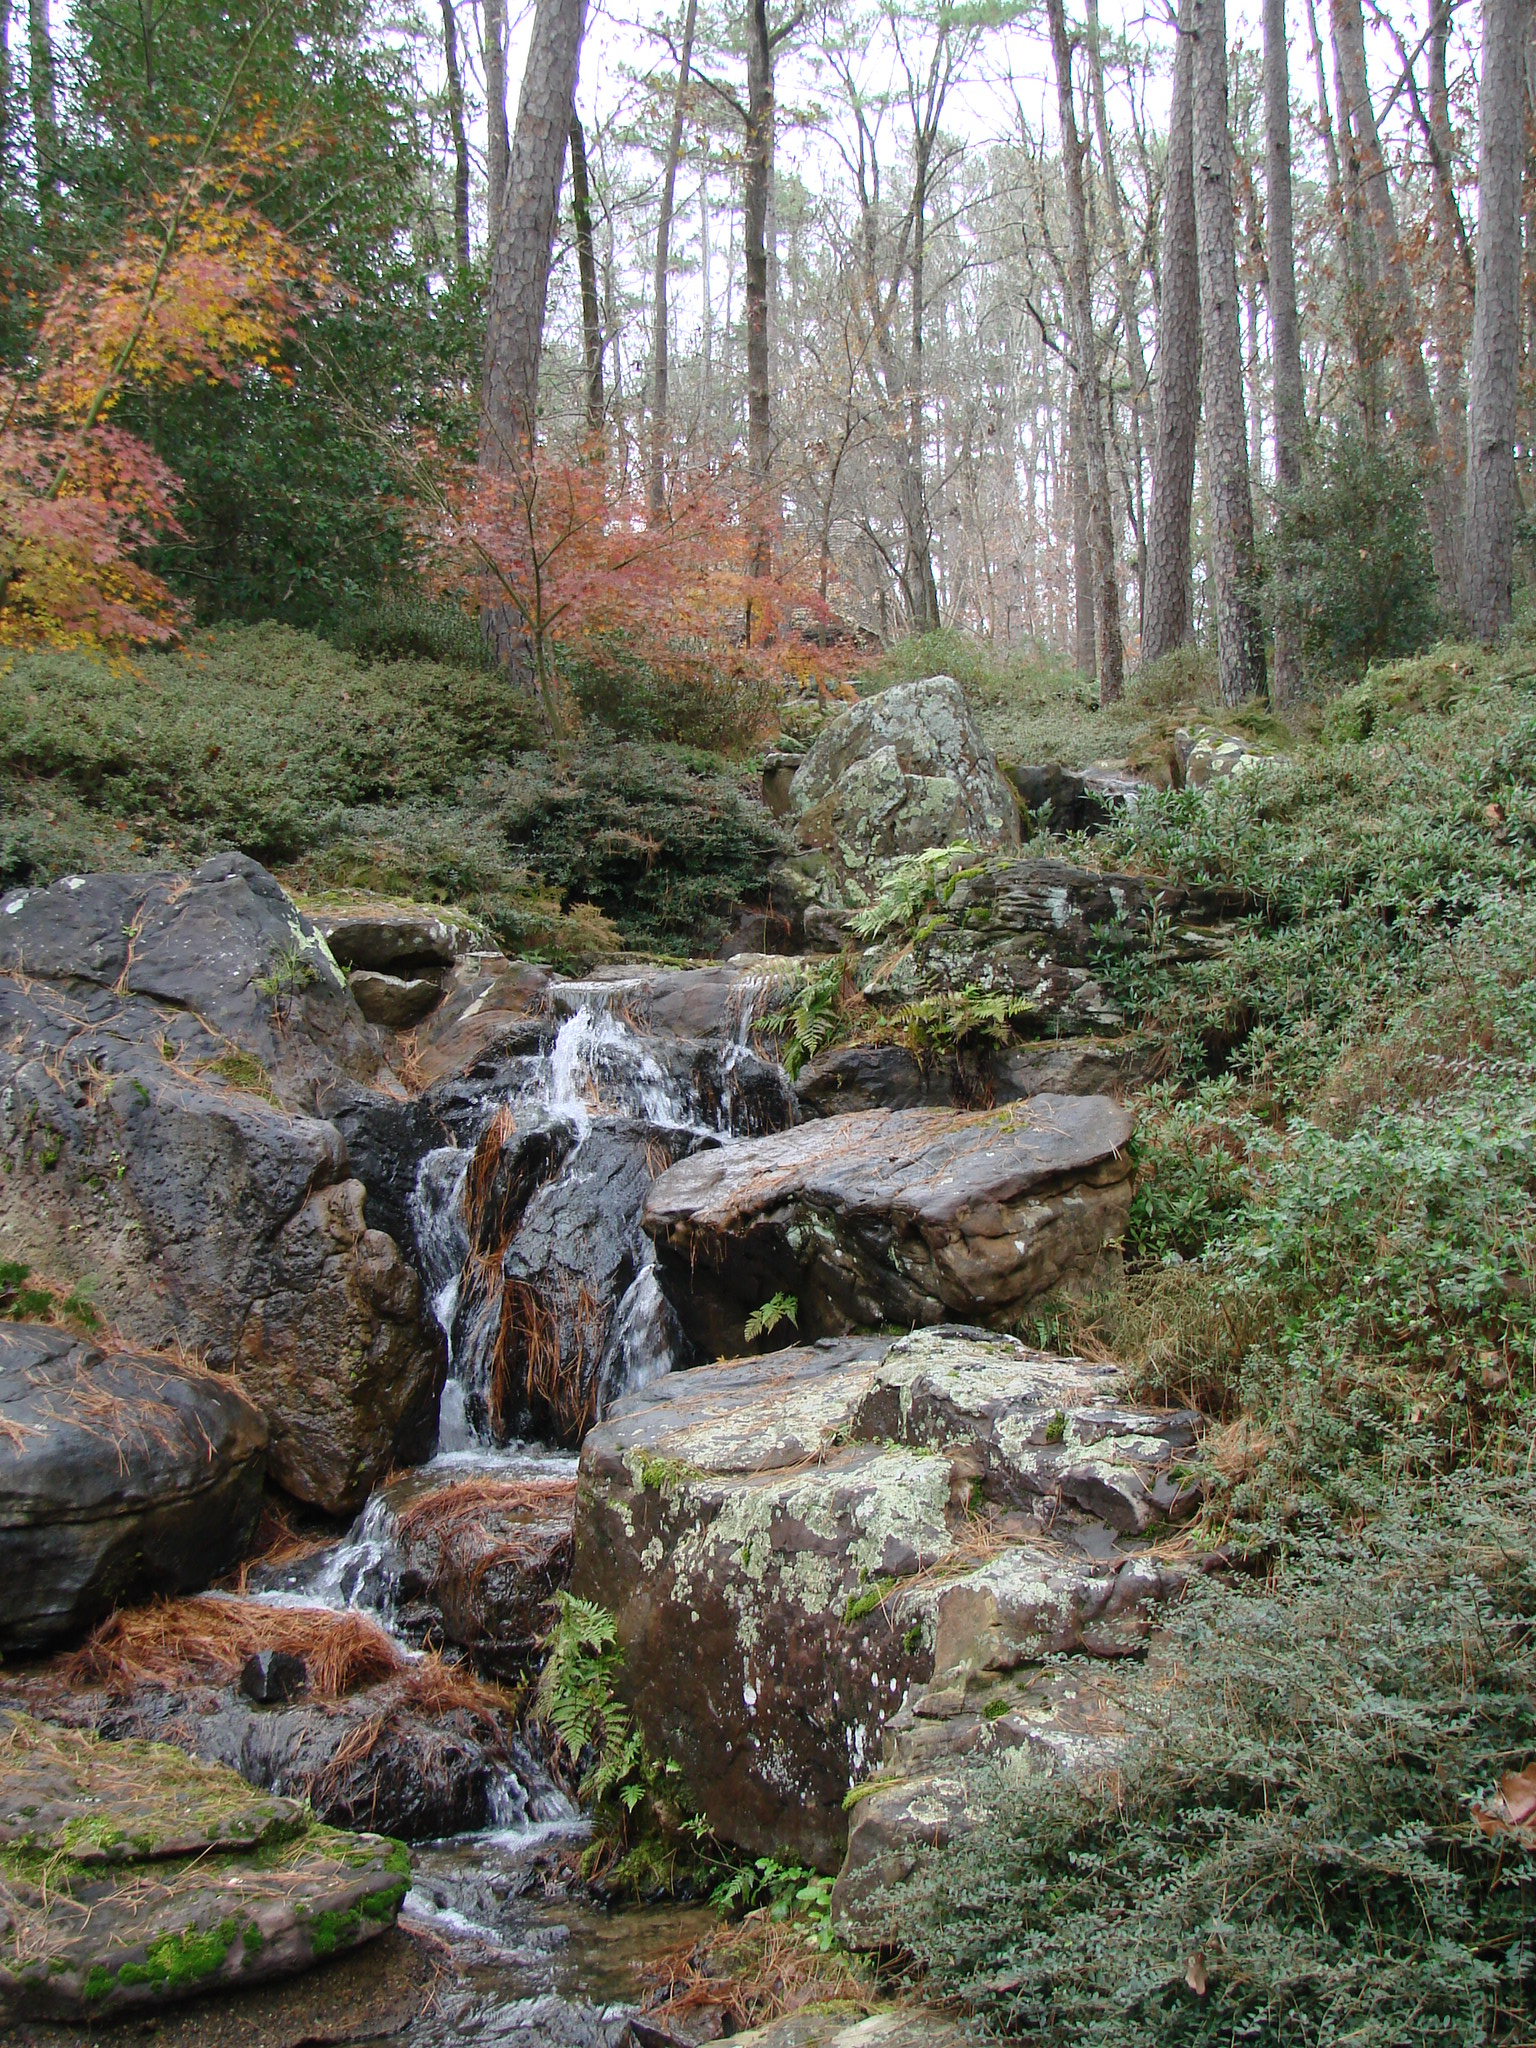 GarvanWoodlandGardens_Waterfall2.JPG